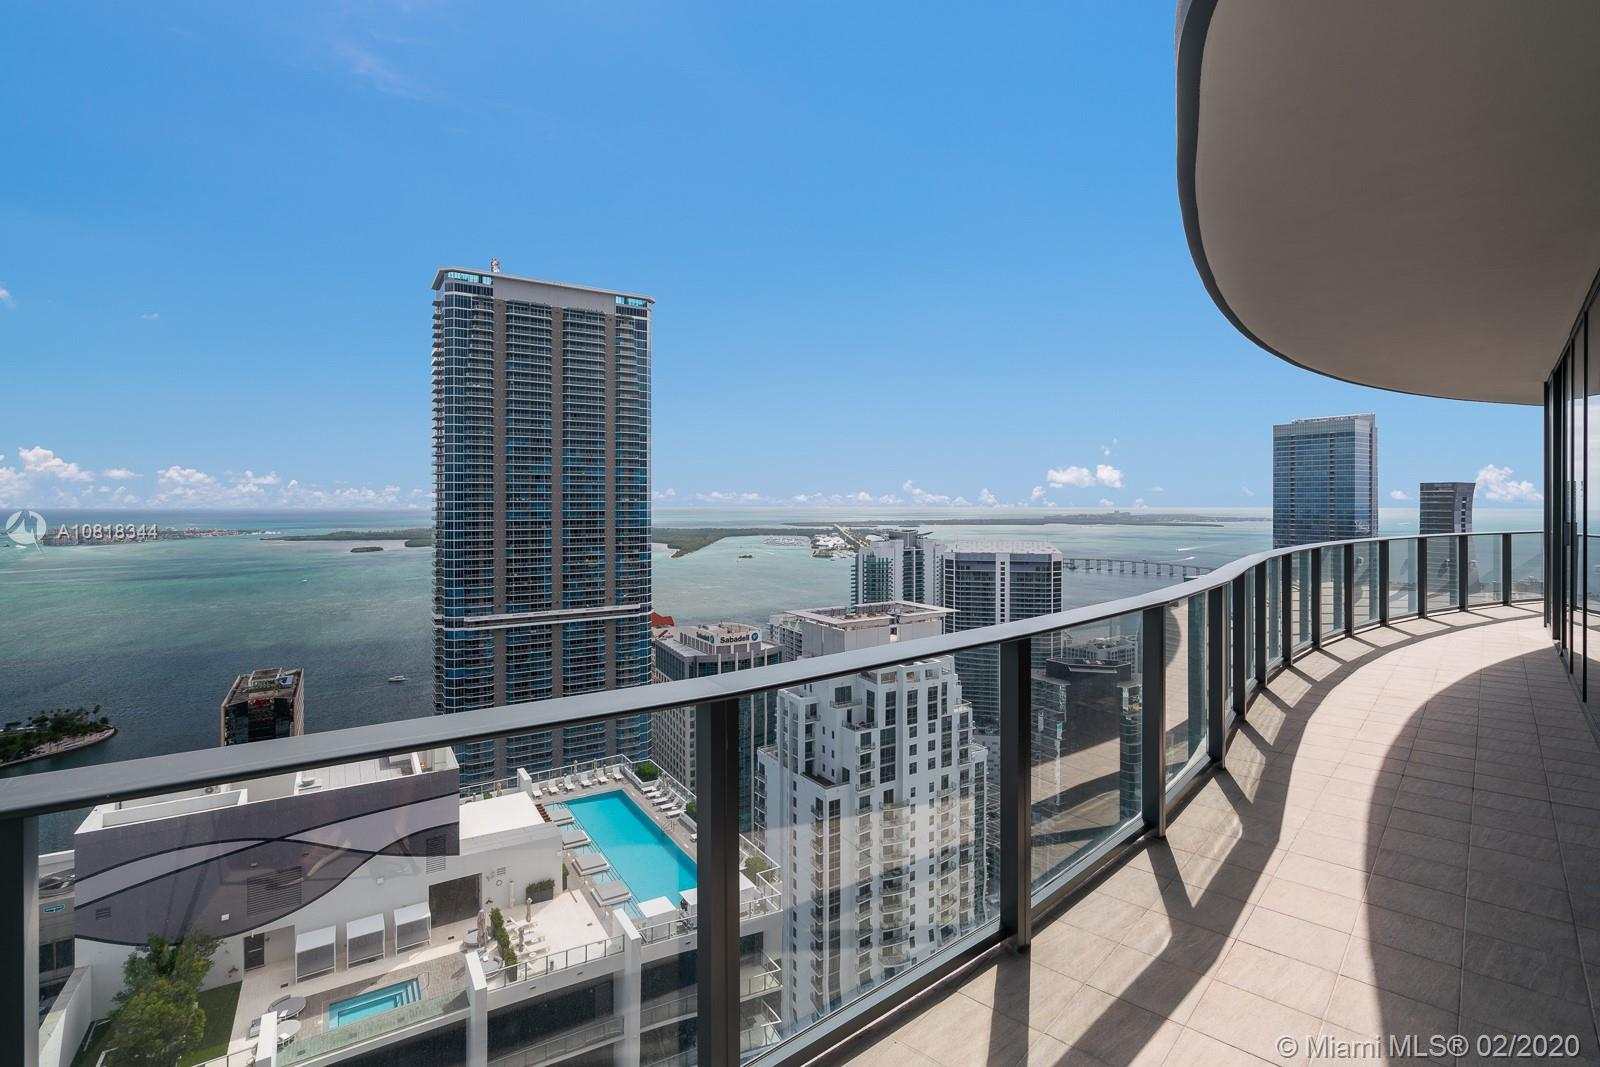 Unobstructed views surround this spectacular Penthouse apartment, situated high atop the Flatiron, Ugo Columbo's hottest new luxury building on Brickell. Perched on the 59th floor, extraordinary unobstructed views of the ocean, bay, and Miami skyline, envelope every room. Featuring, a wraparound balcony, upgraded developer finishes, ceramic wood floors, motorized shades throughout, and Italian custom finished closets. Amenities and services  include, two pools, state of the art fitness center, spa, and twenty four hour concierge. Flatiron Brickell is an oasis of luxury located in the heart of Brickell.